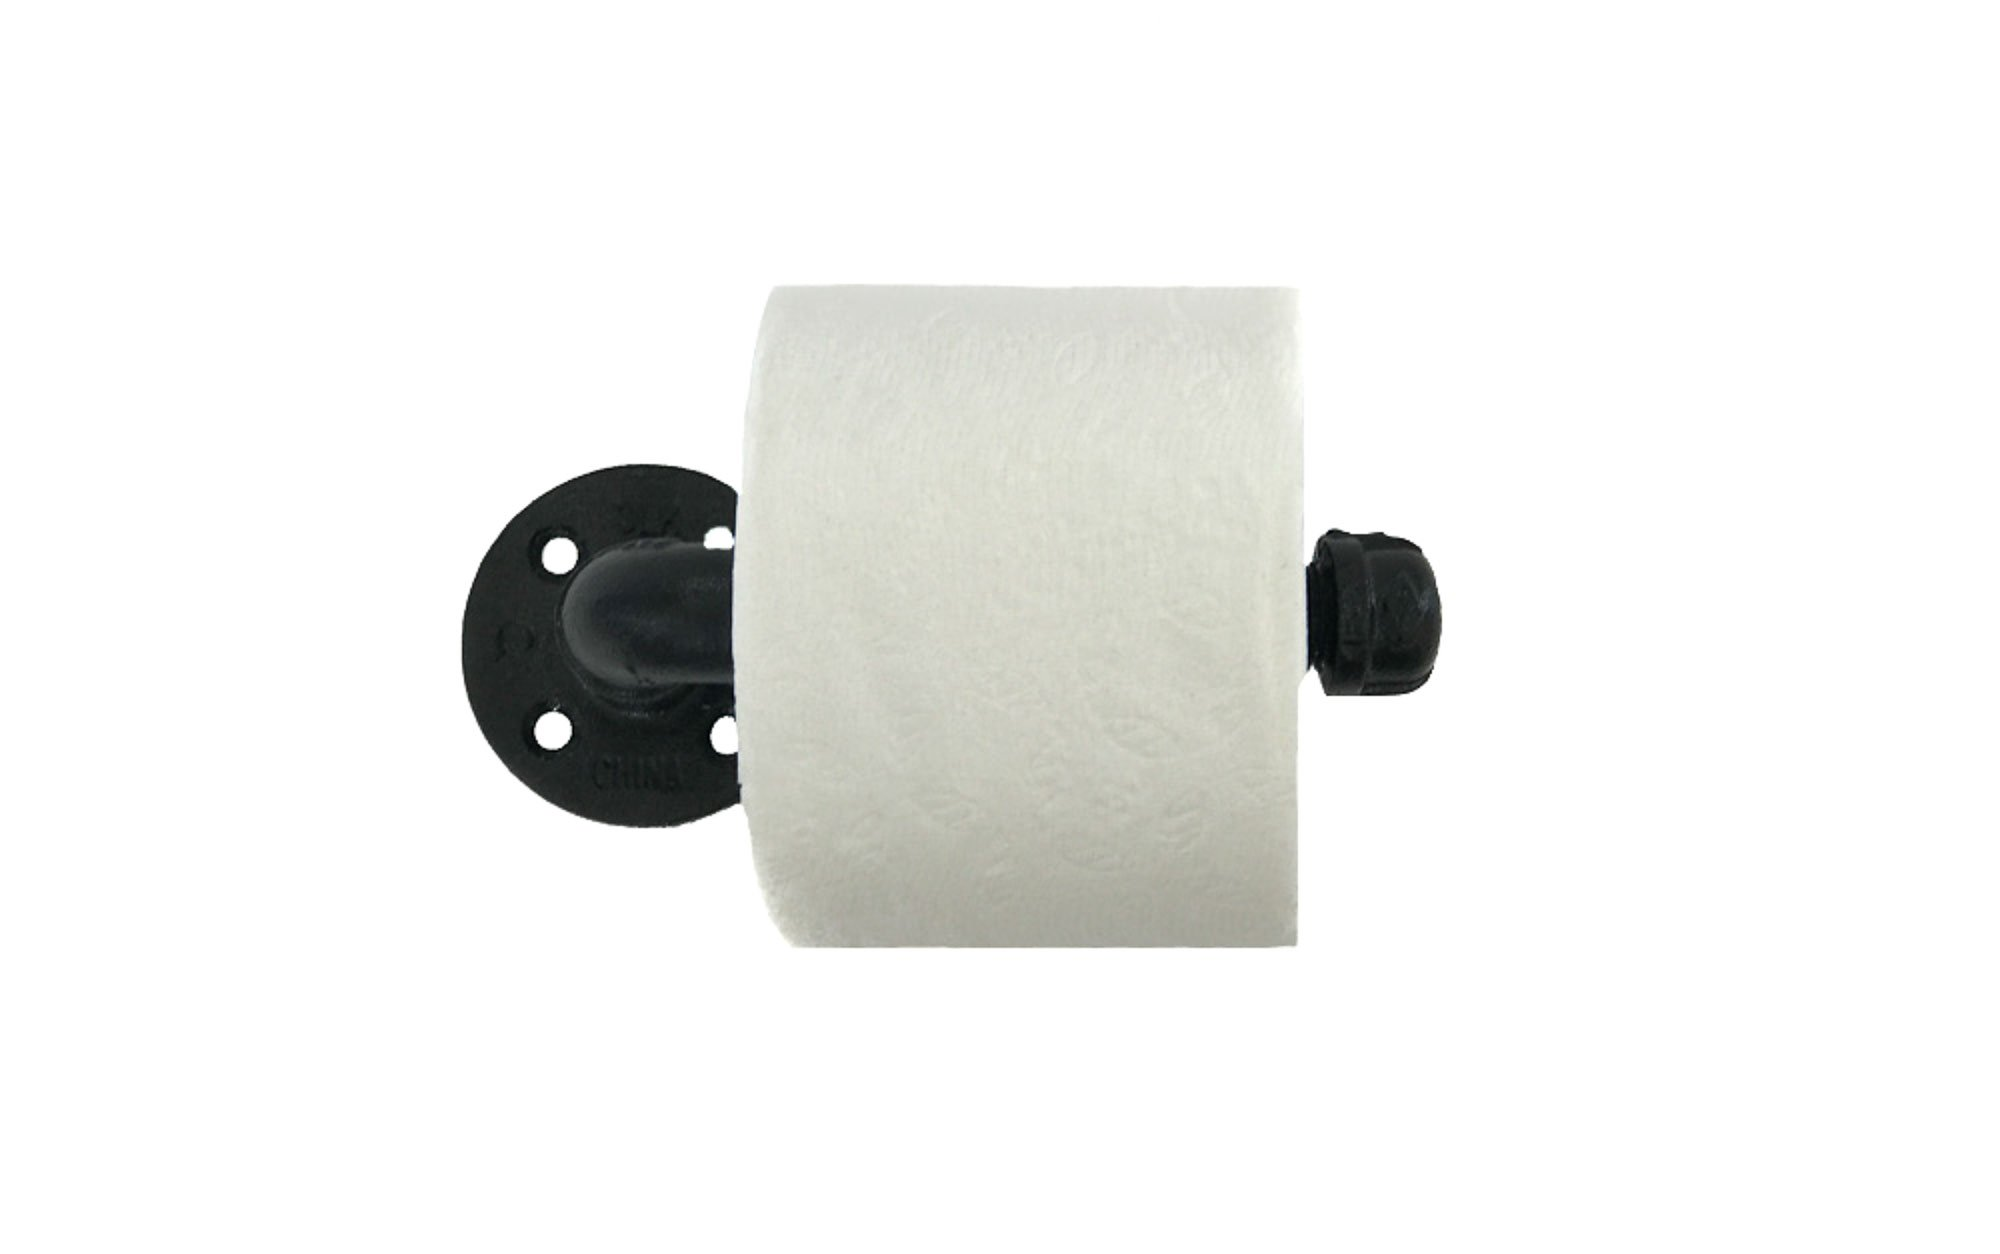 Command Toilet Paper Holder - Toulet Paper Holder by Piping Hot Art Works (Image #3)